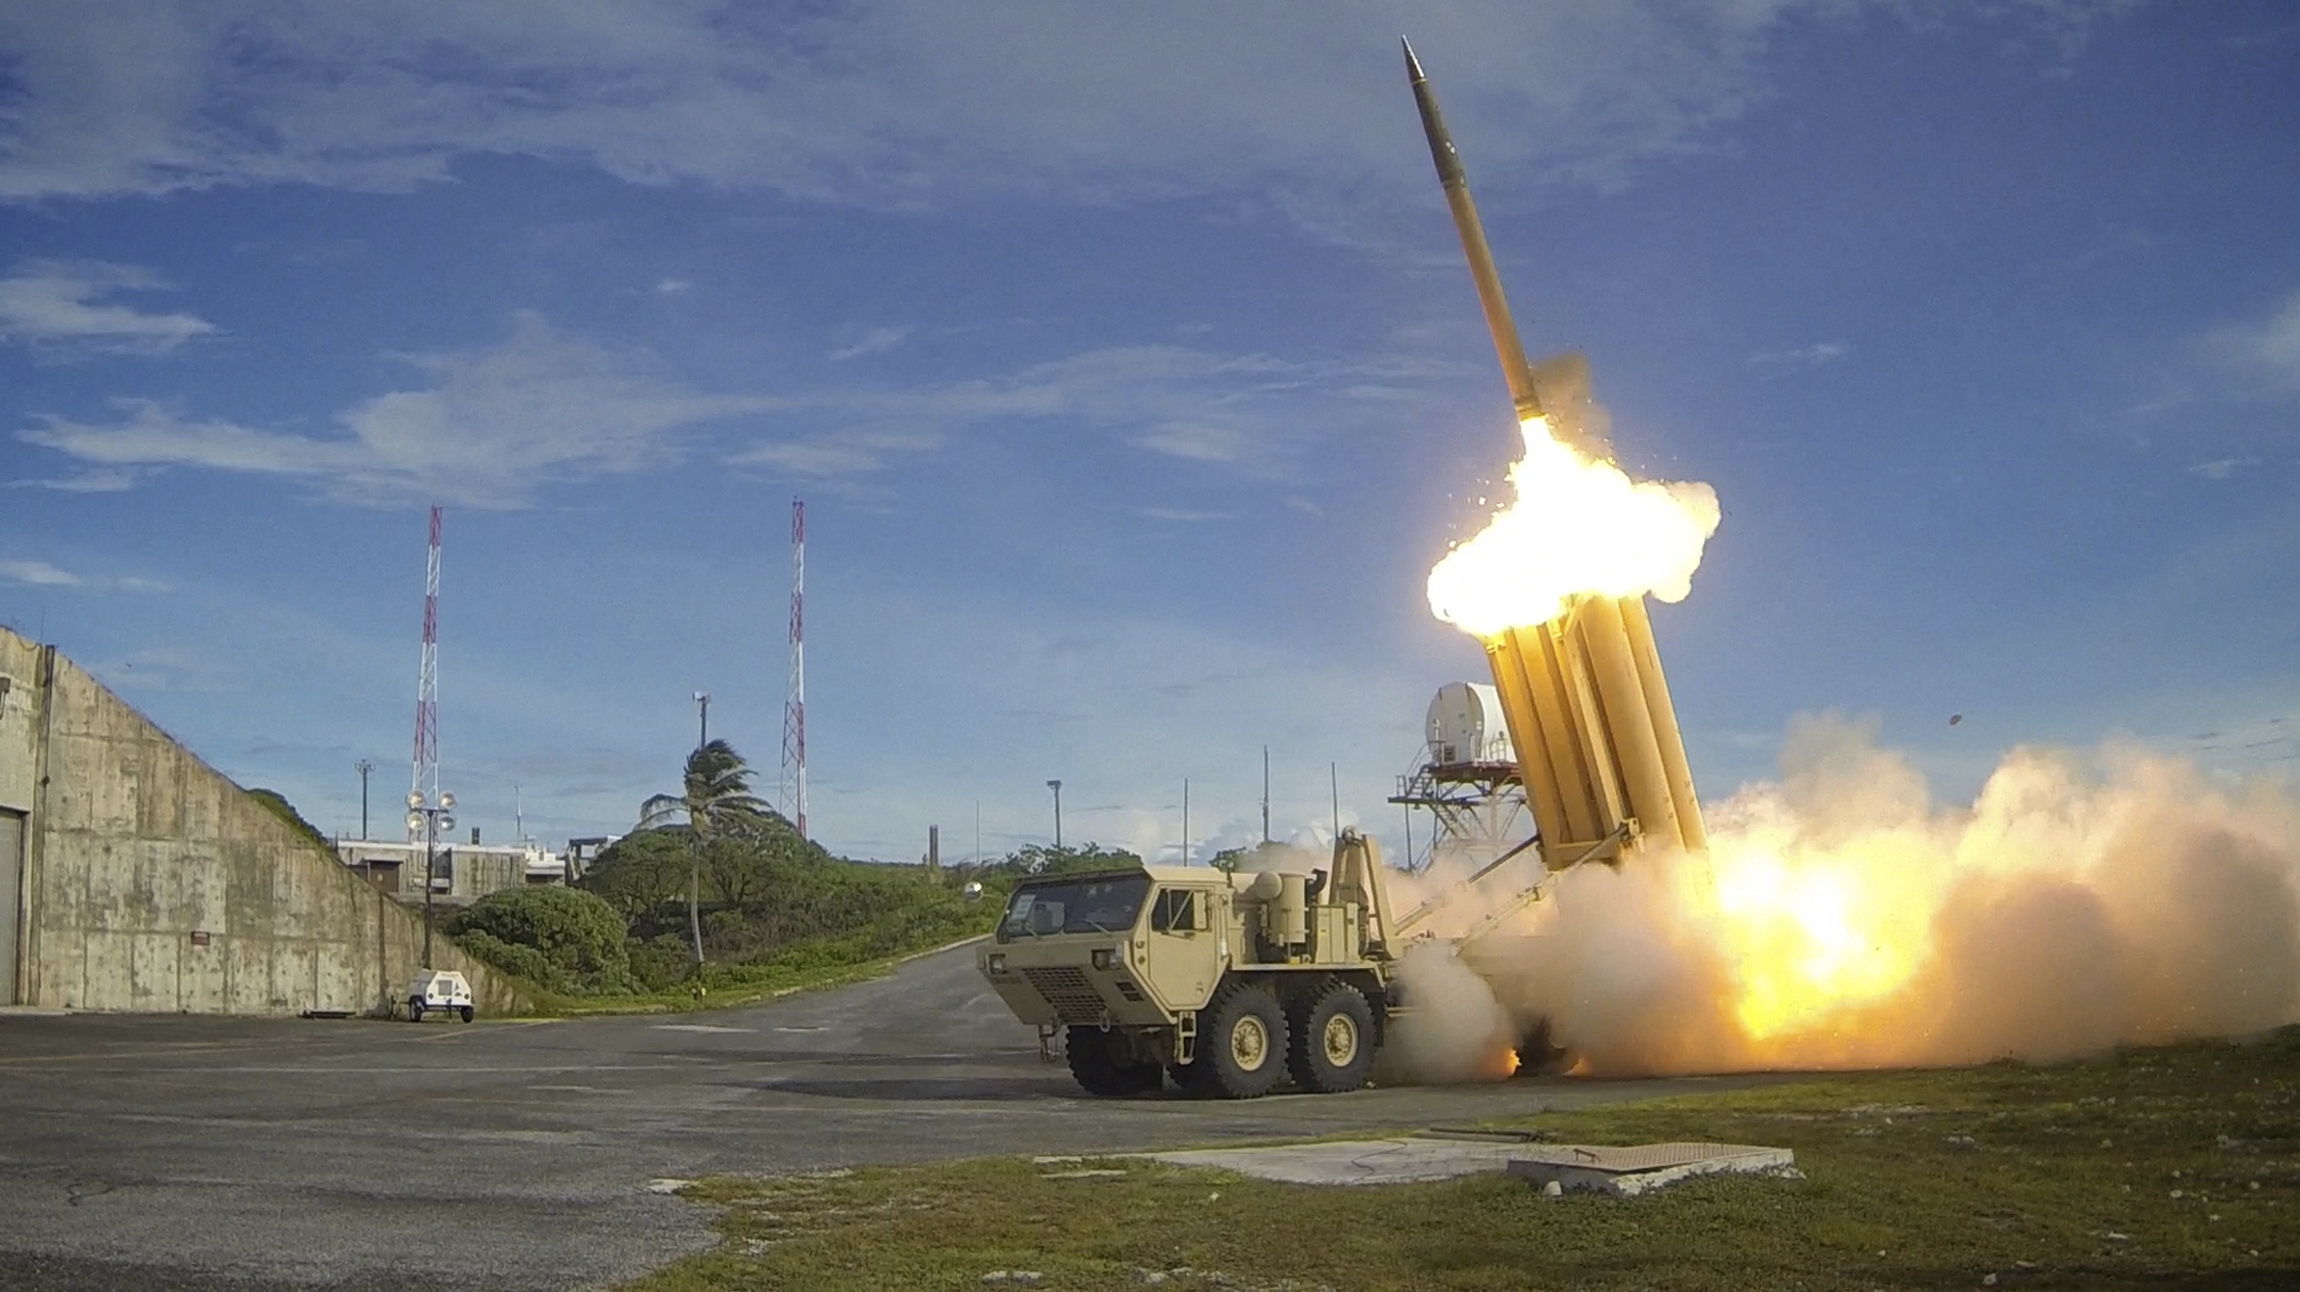 https://i0.wp.com/s1.ibtimes.com/sites/www.ibtimes.com/files/2016/03/23/thaad-missile-system.jpg